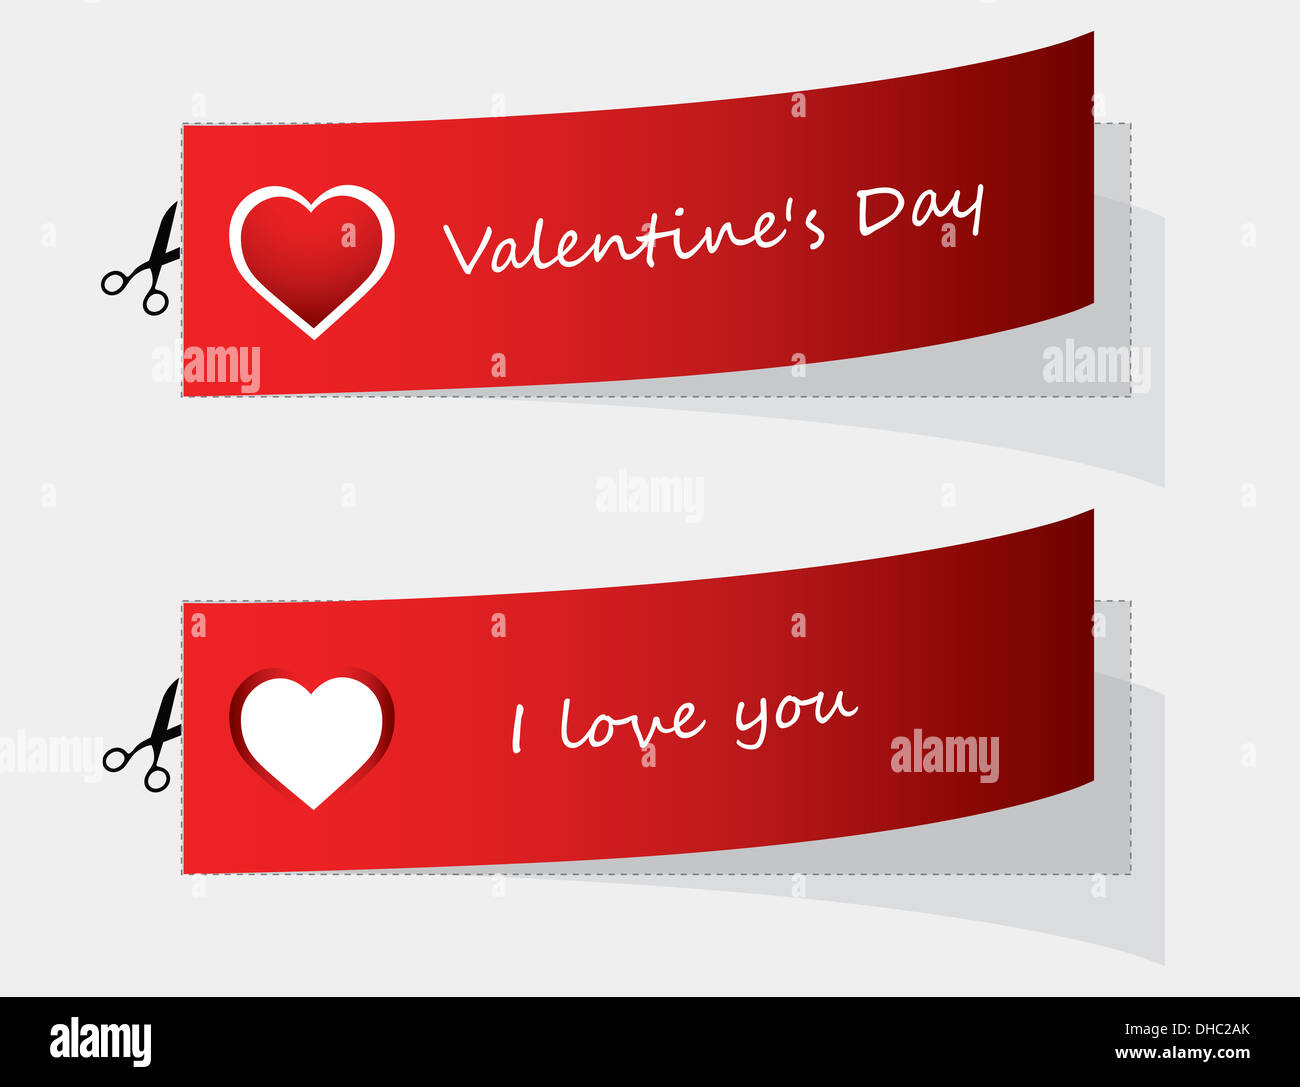 special labels for Valentine's day - Stock Image